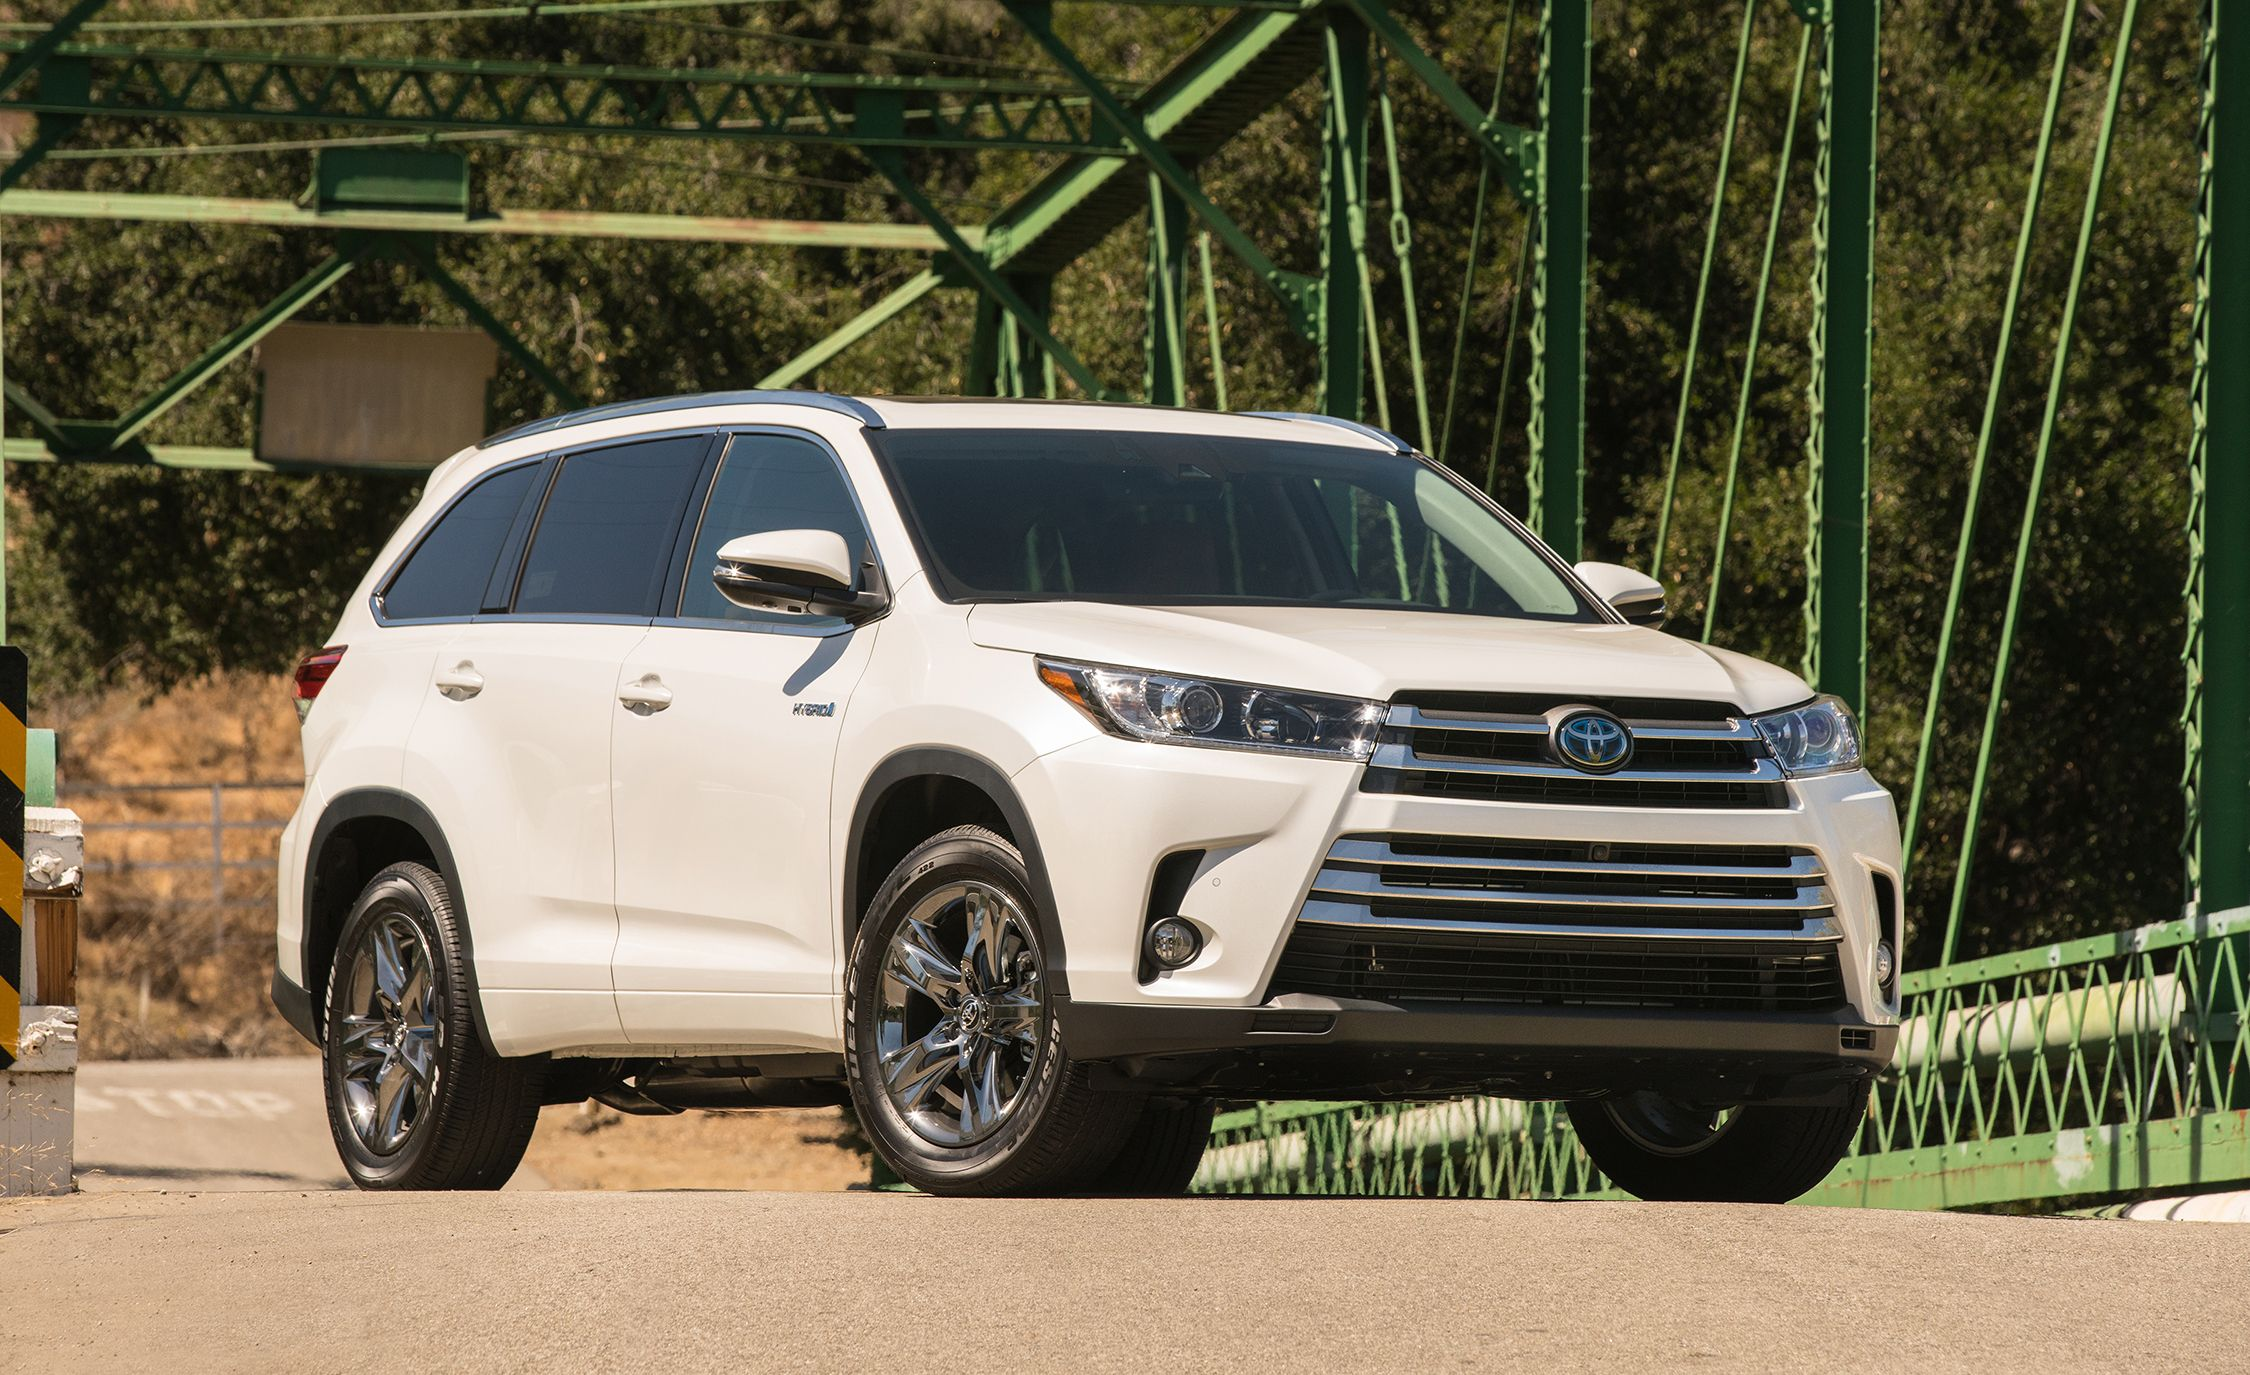 The 25 Best-Selling Cars, Trucks, SUVs, and Crossovers of 2019